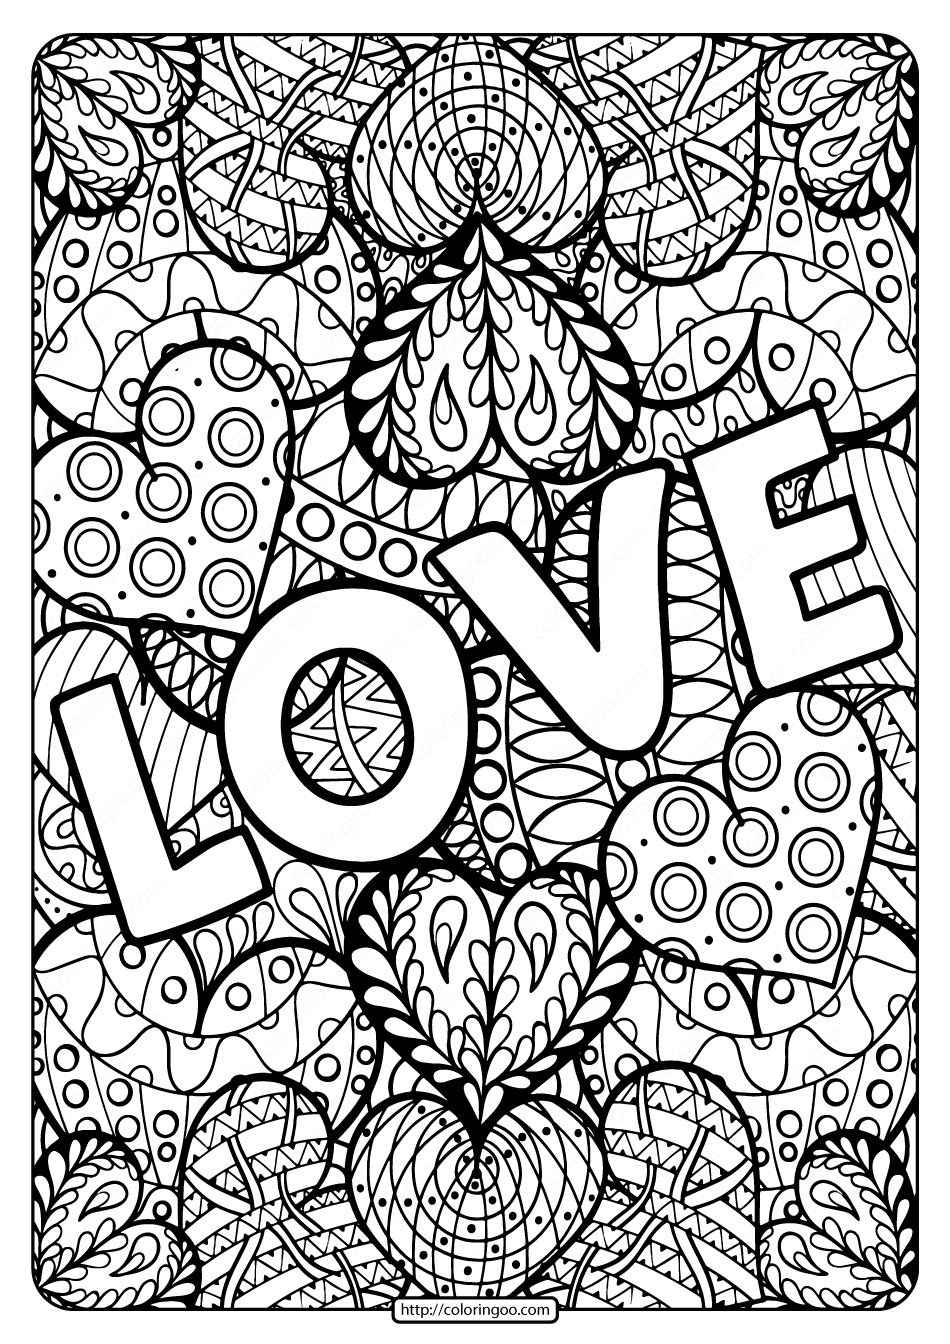 coloring pictures with color color by number coloring pages to download and print for free with coloring pictures color